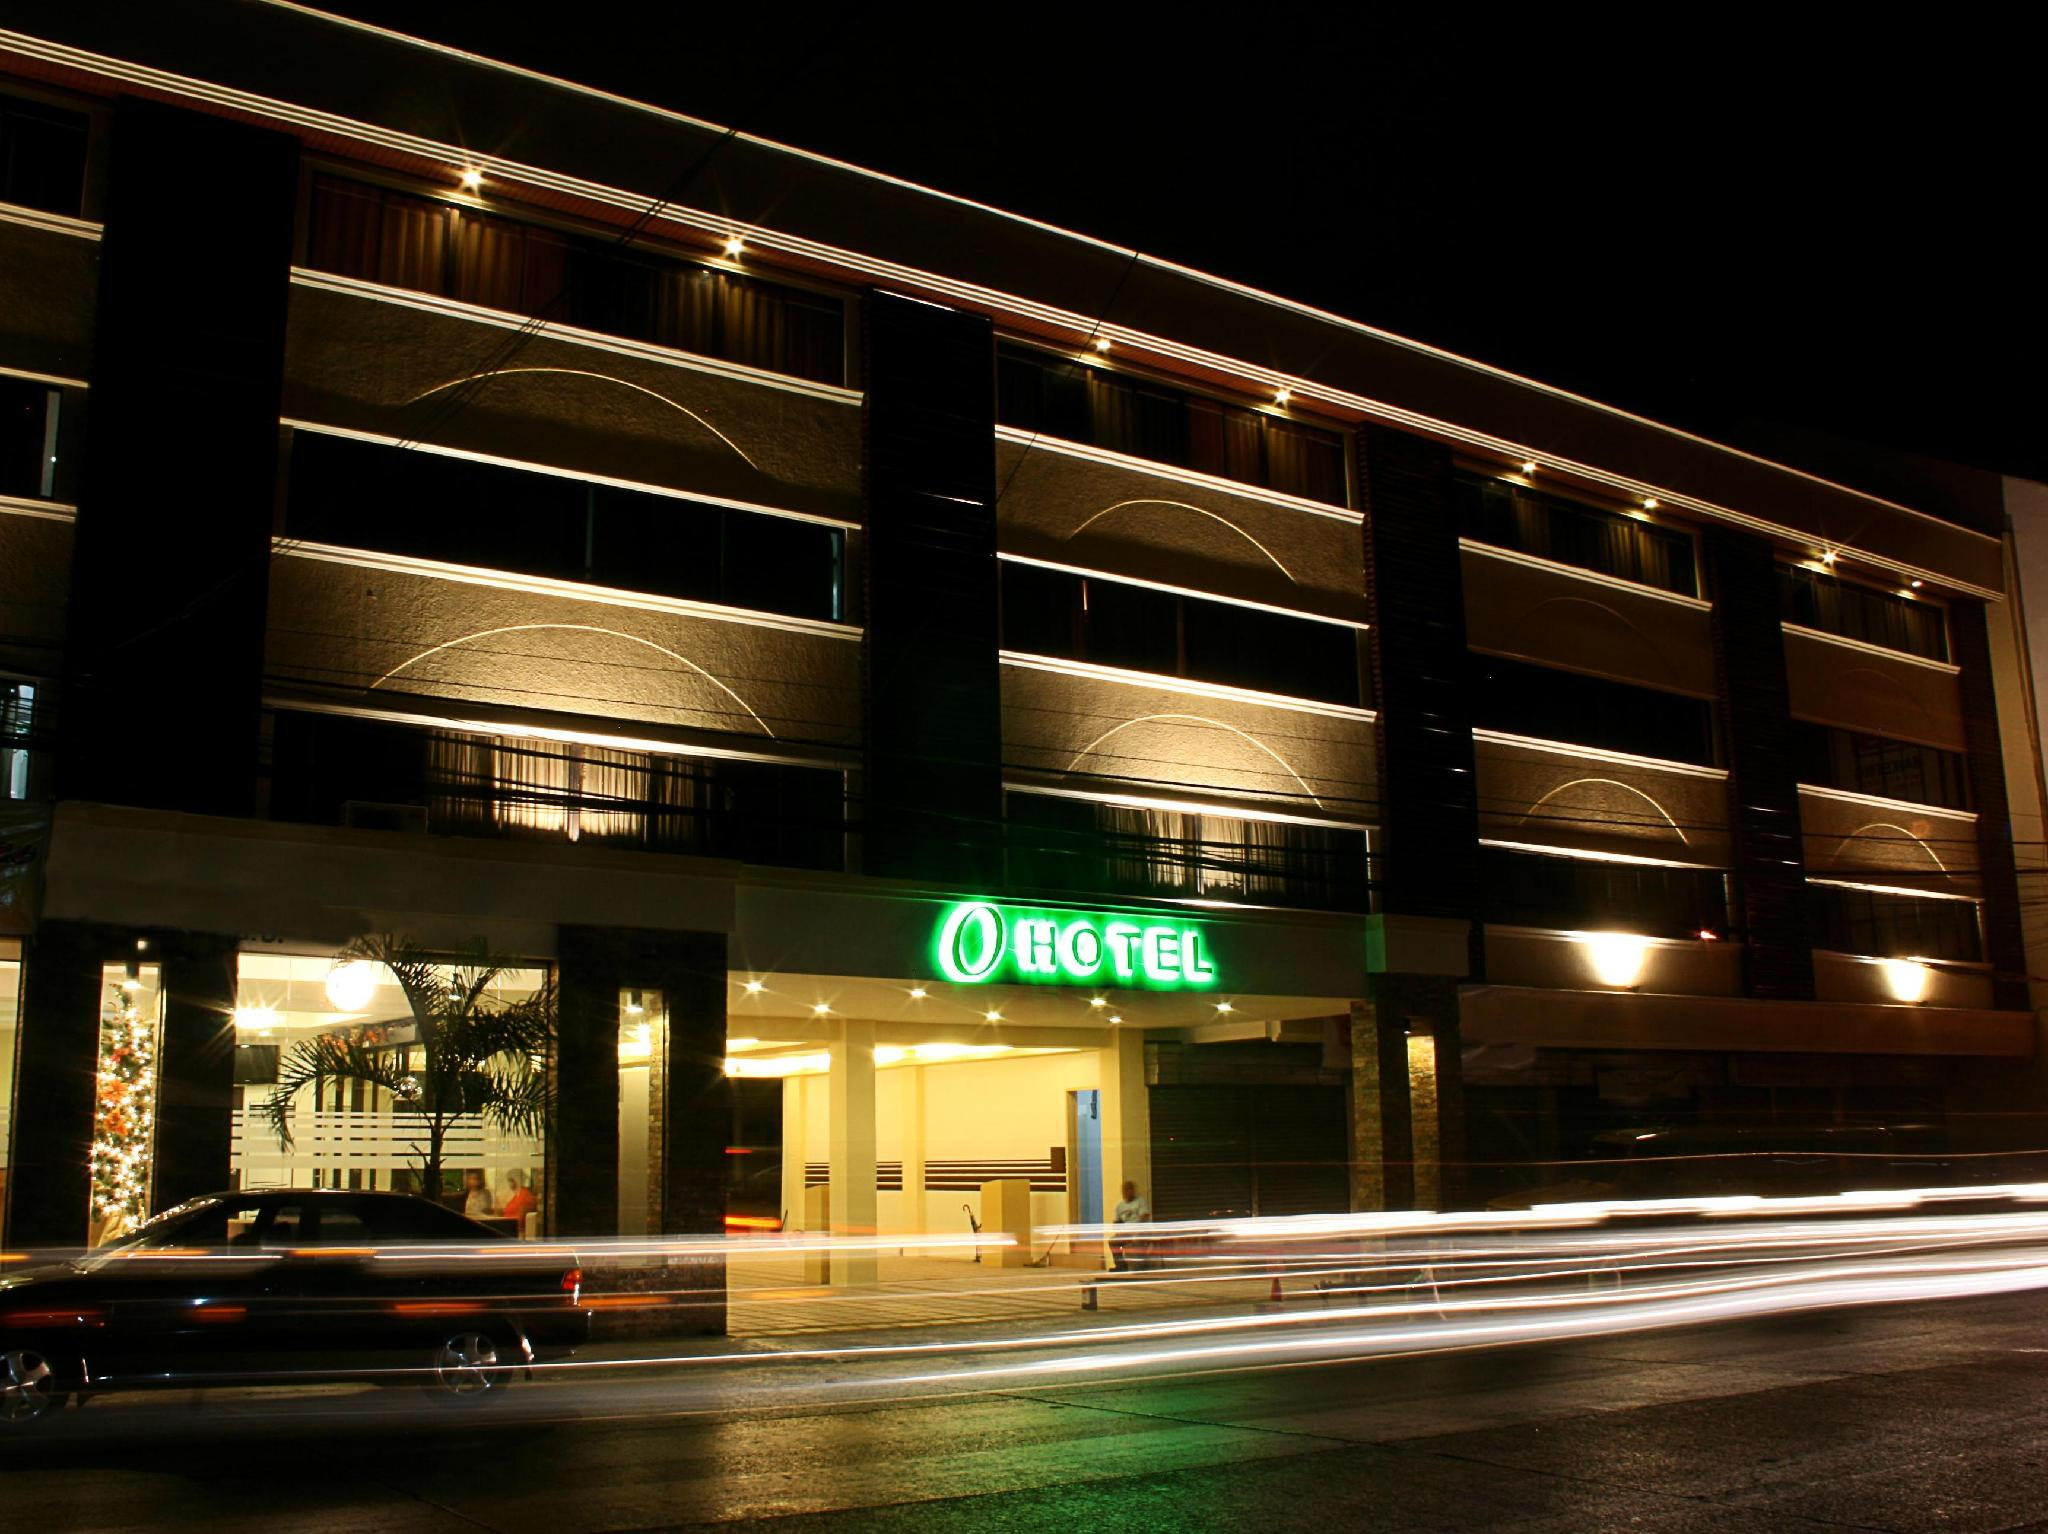 O Hotel Bacolod / Negros Occidental